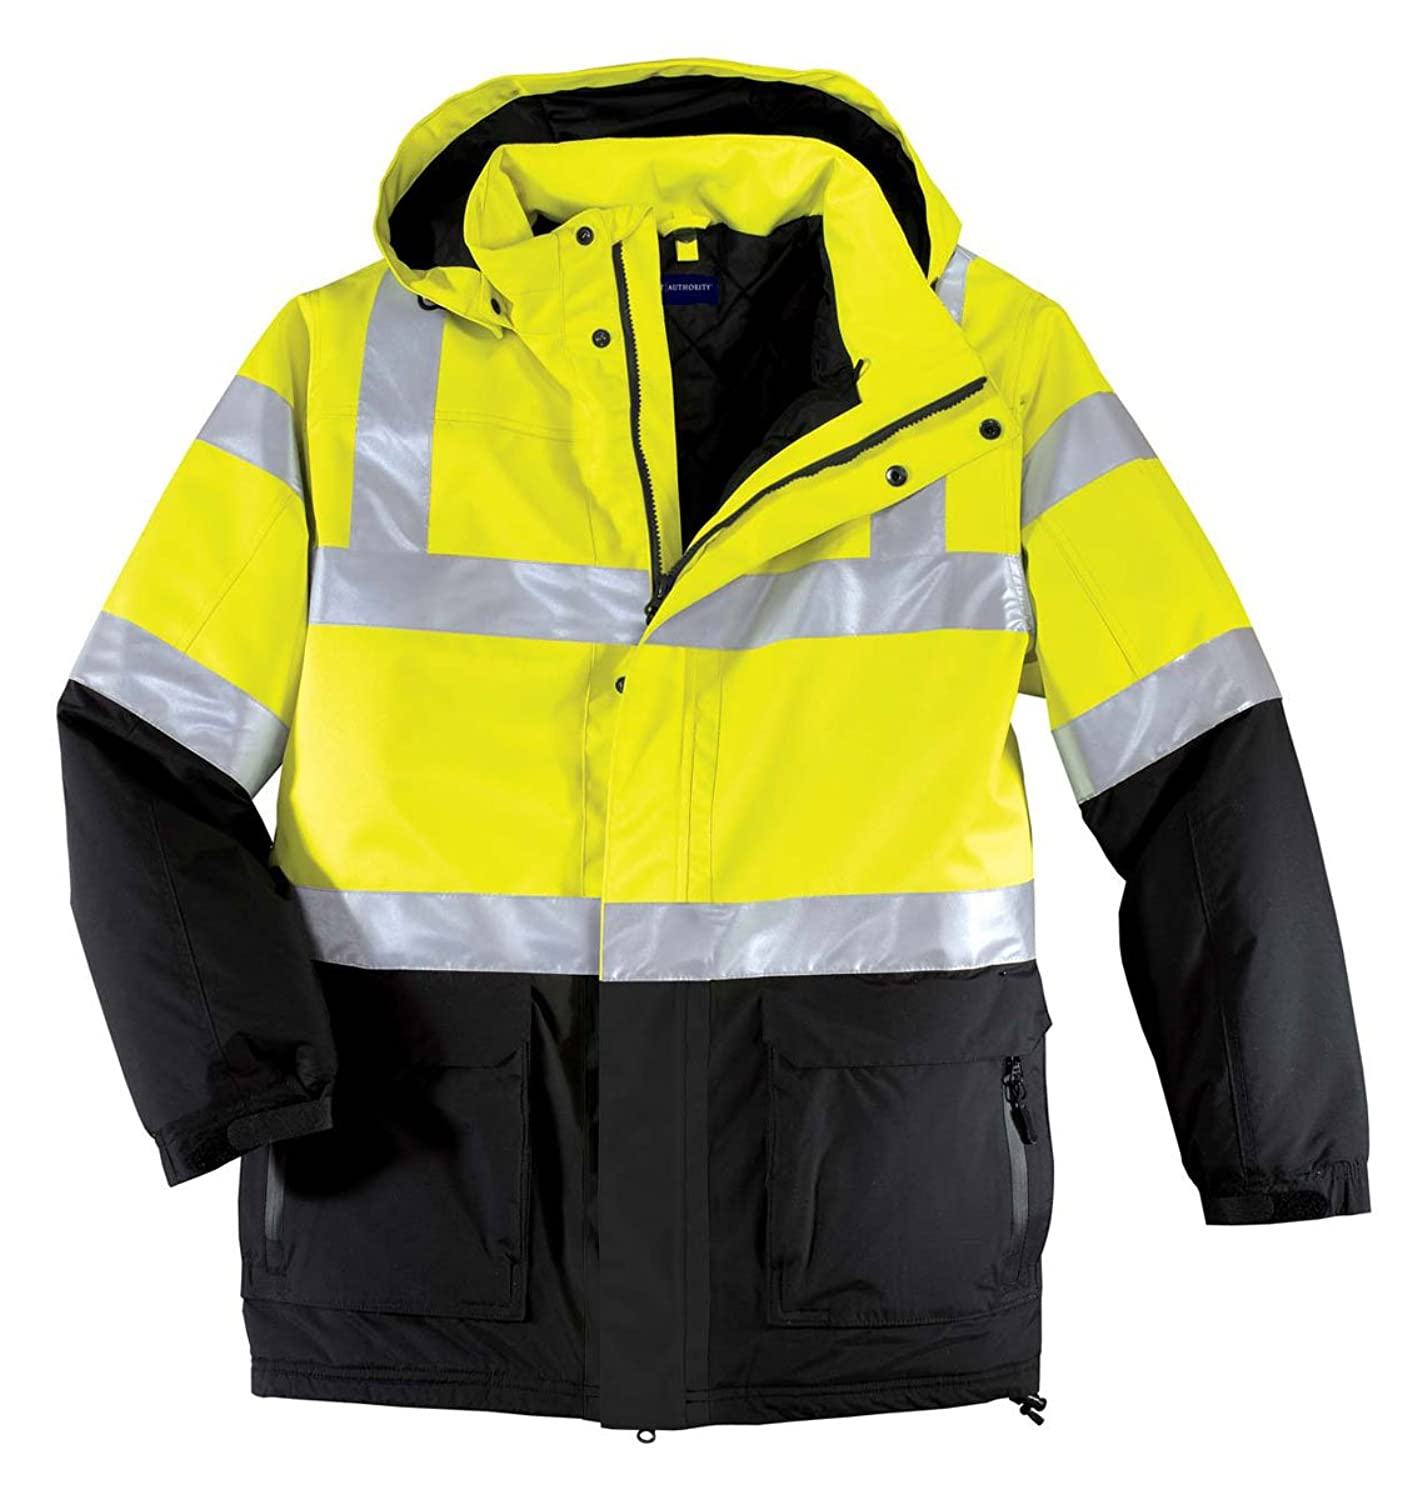 Port Authority OUTERWEAR メンズ Safety Yellow/ Black/Reflective 4L  B071VH142Q